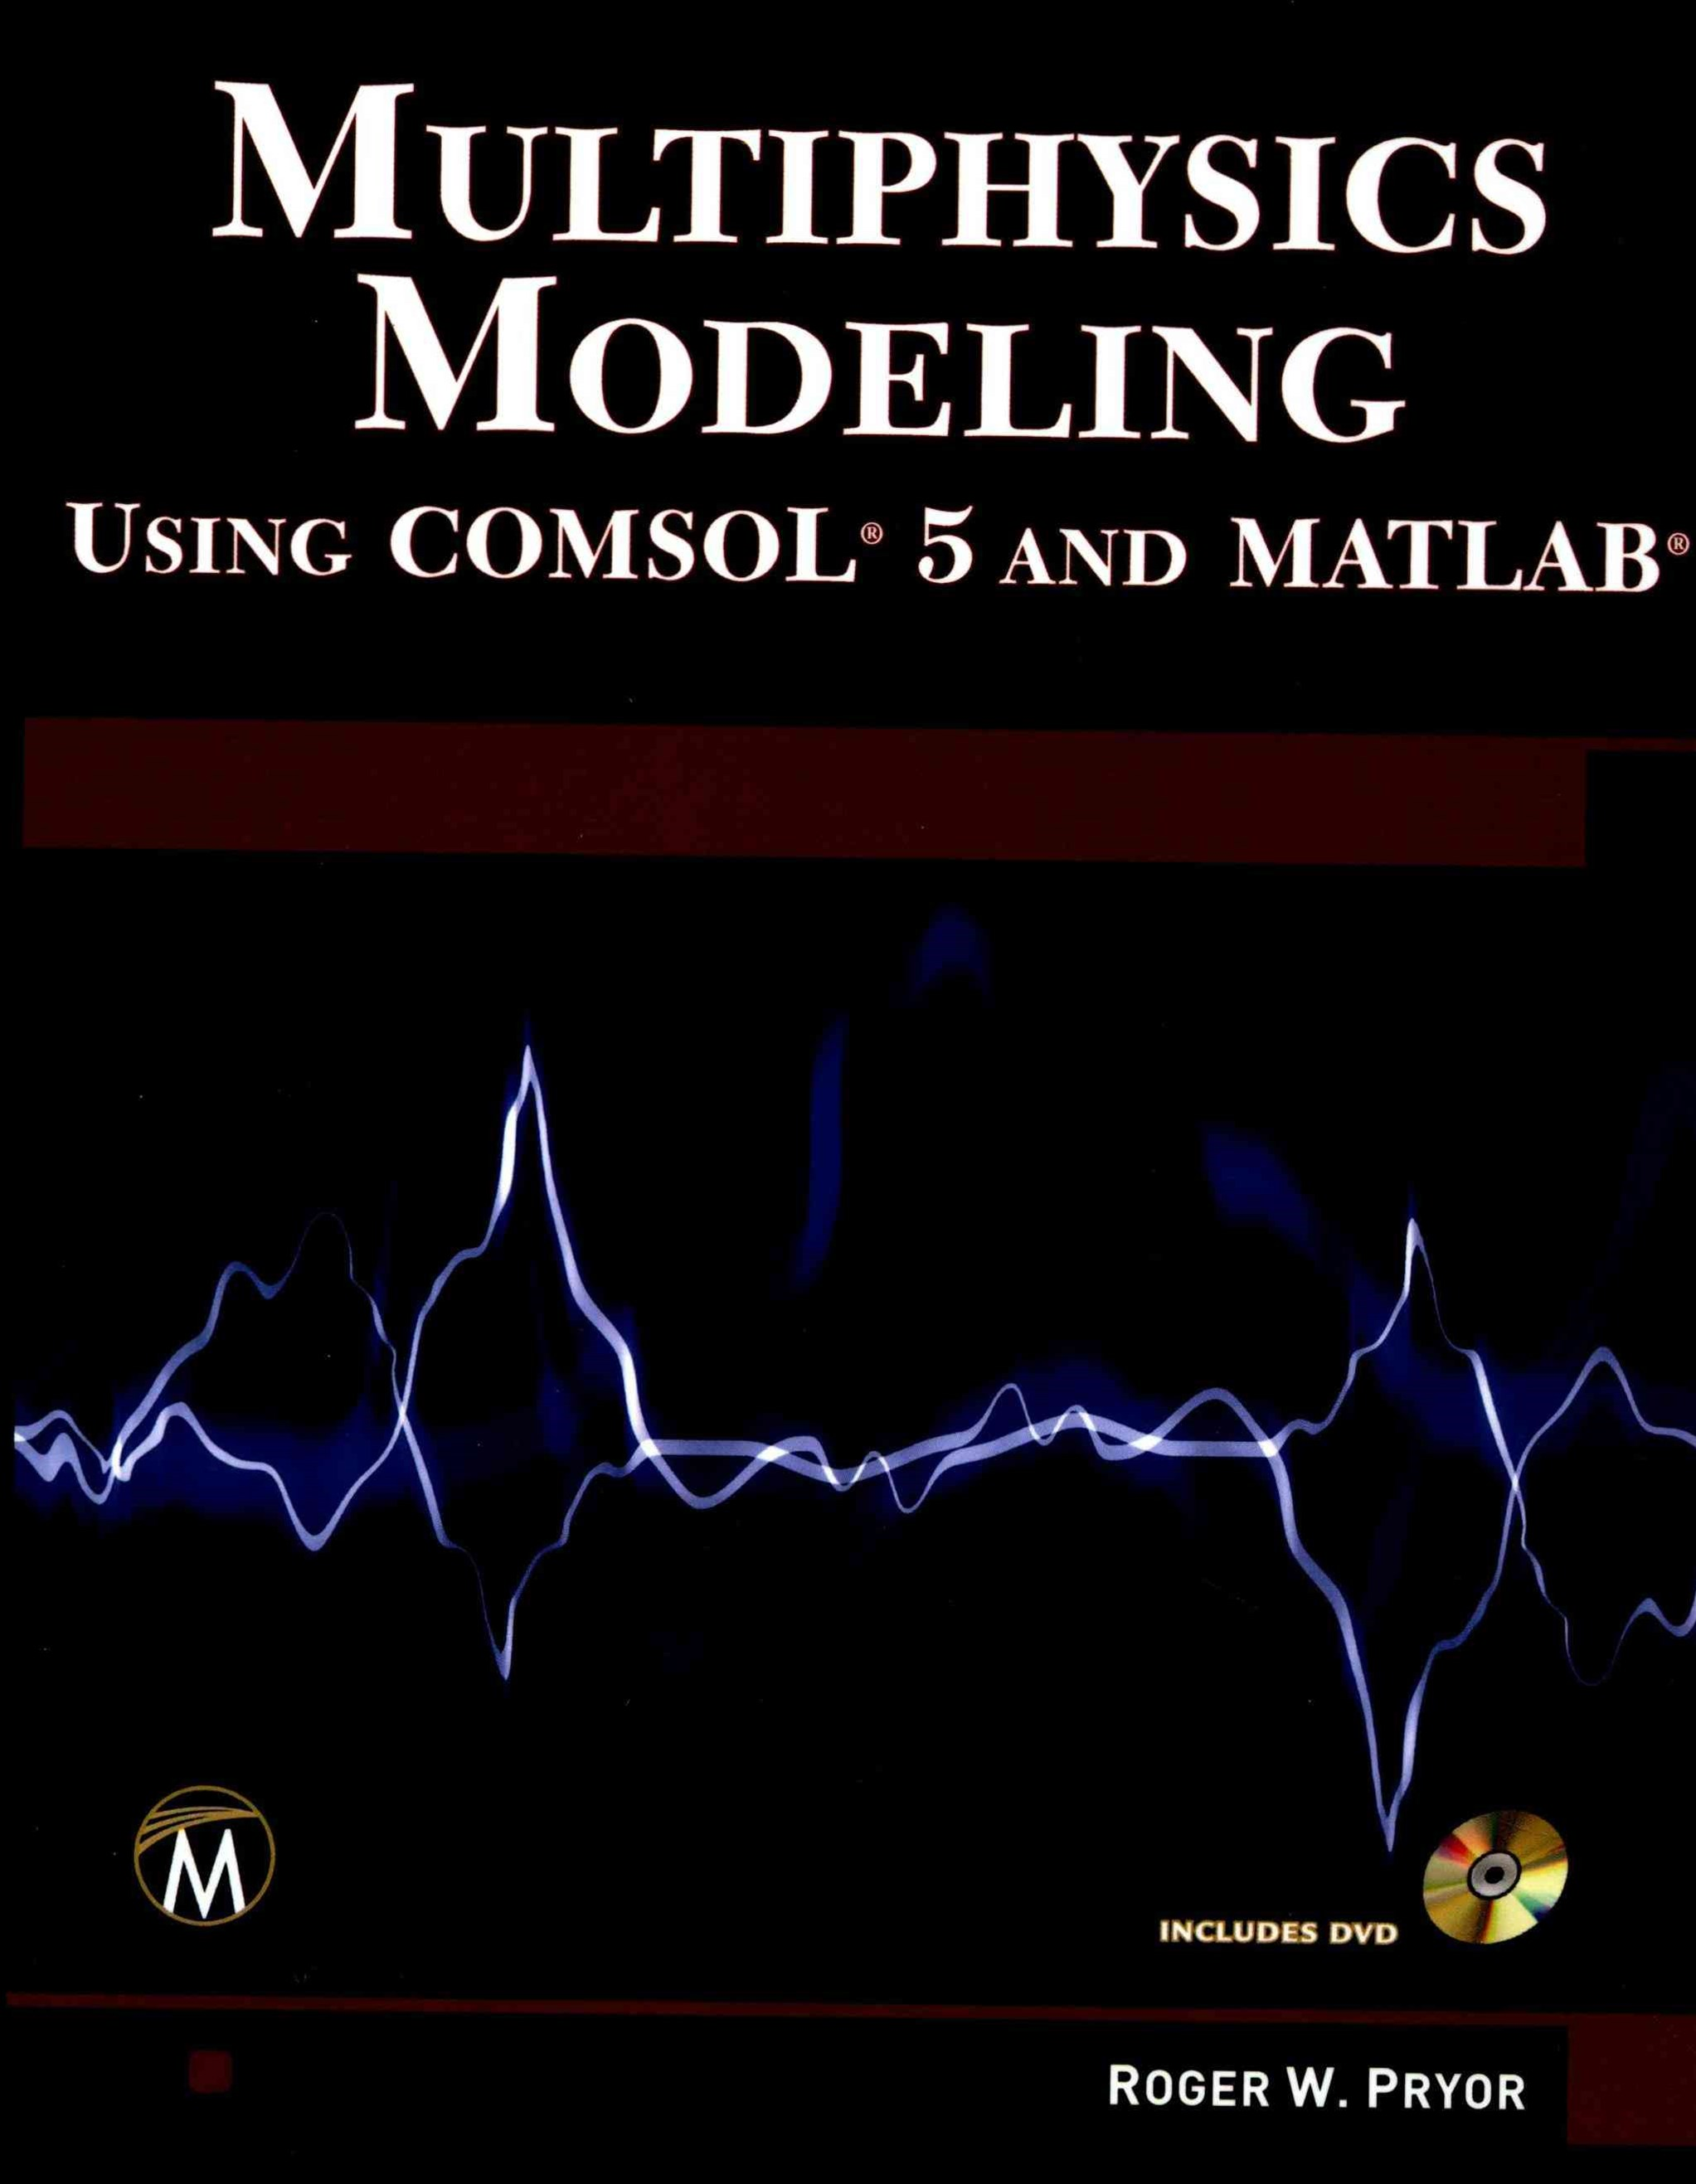 Multiphysics Modeling